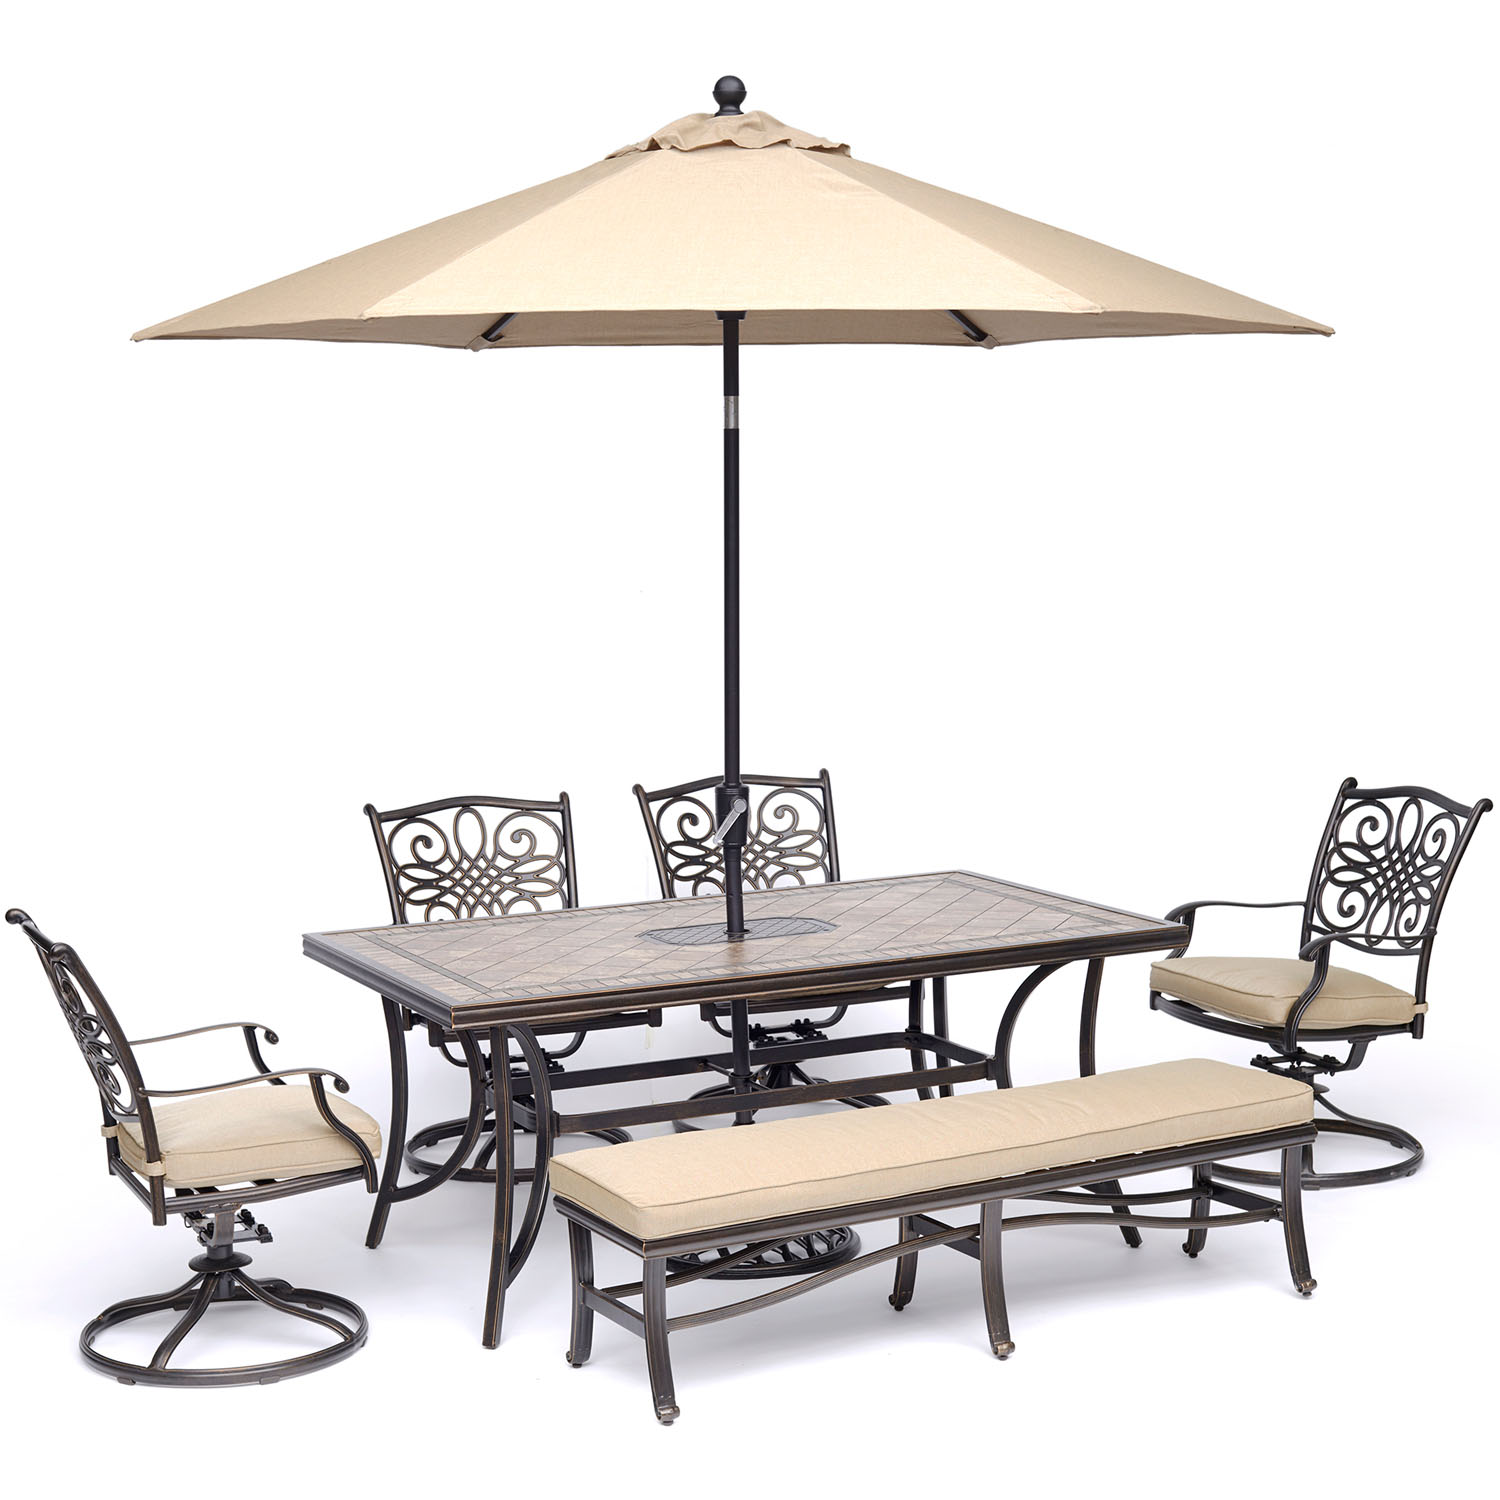 """Hanover Monaco 6-Piece Dining Set in Tan with 4 Swivel Rockers, 1 Bench, a 40"""" x 68"""" Tile-Top Table, and a 9 Ft. Umbrella with Stand"""